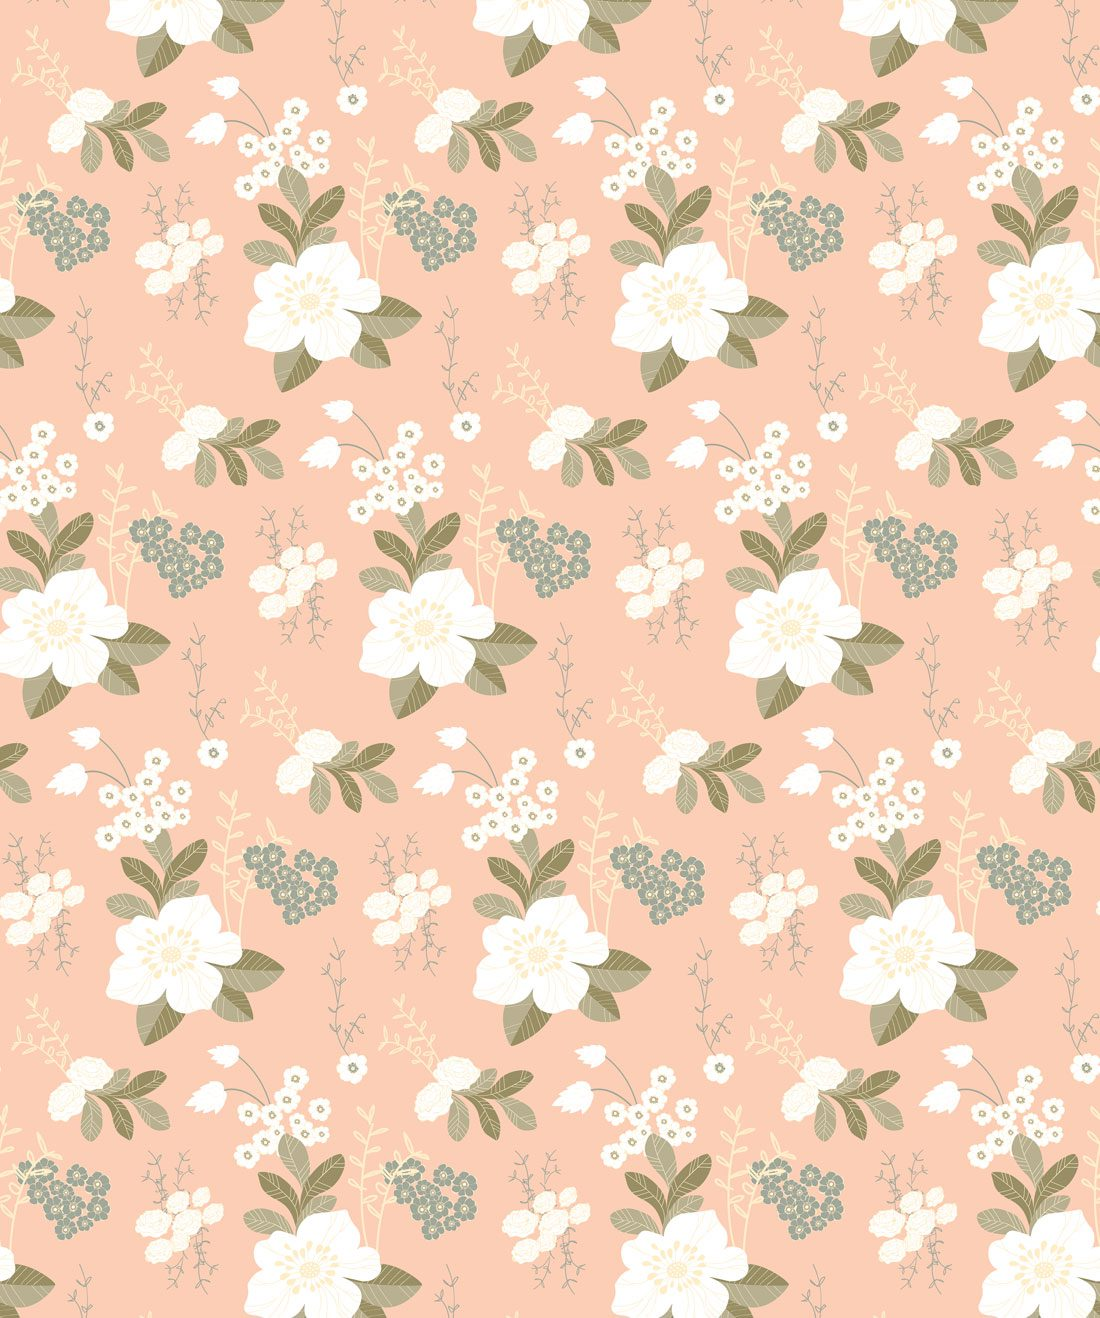 Flower Garden - Peachy Wallpaper